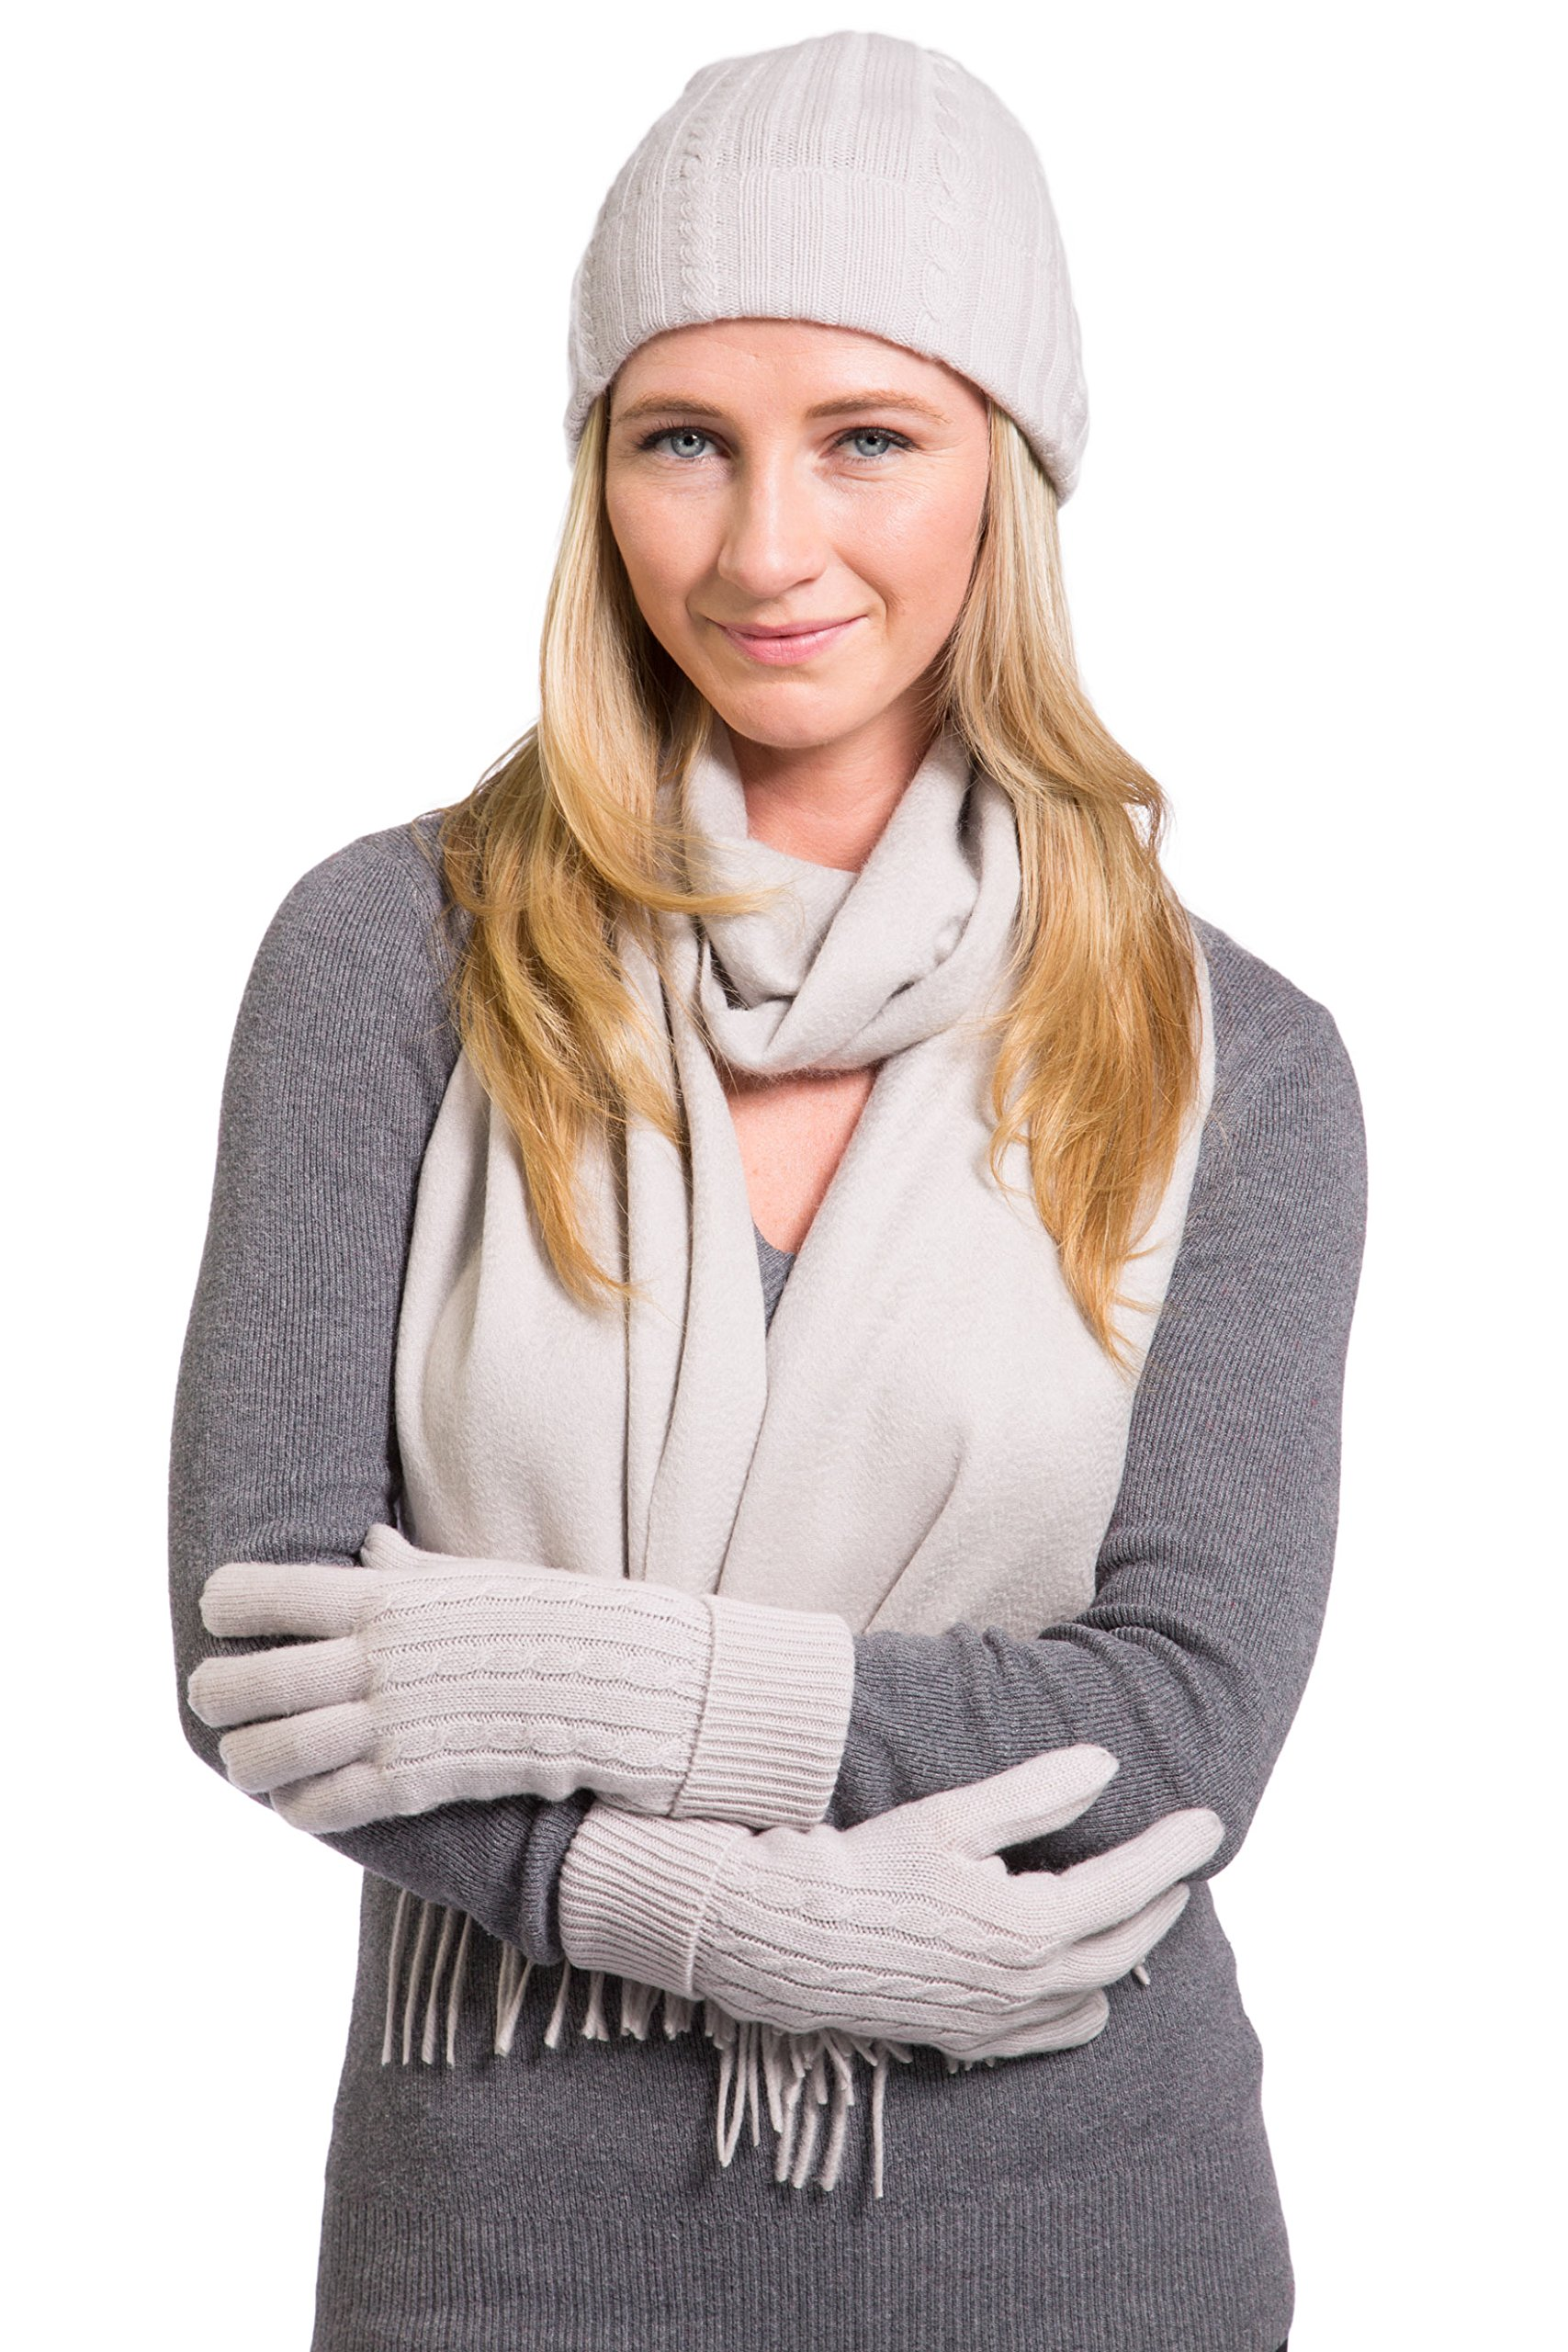 Fishers Finery Women's 100% Cashmere Hat Glove and Scarf Set; Gift Box (Stone)